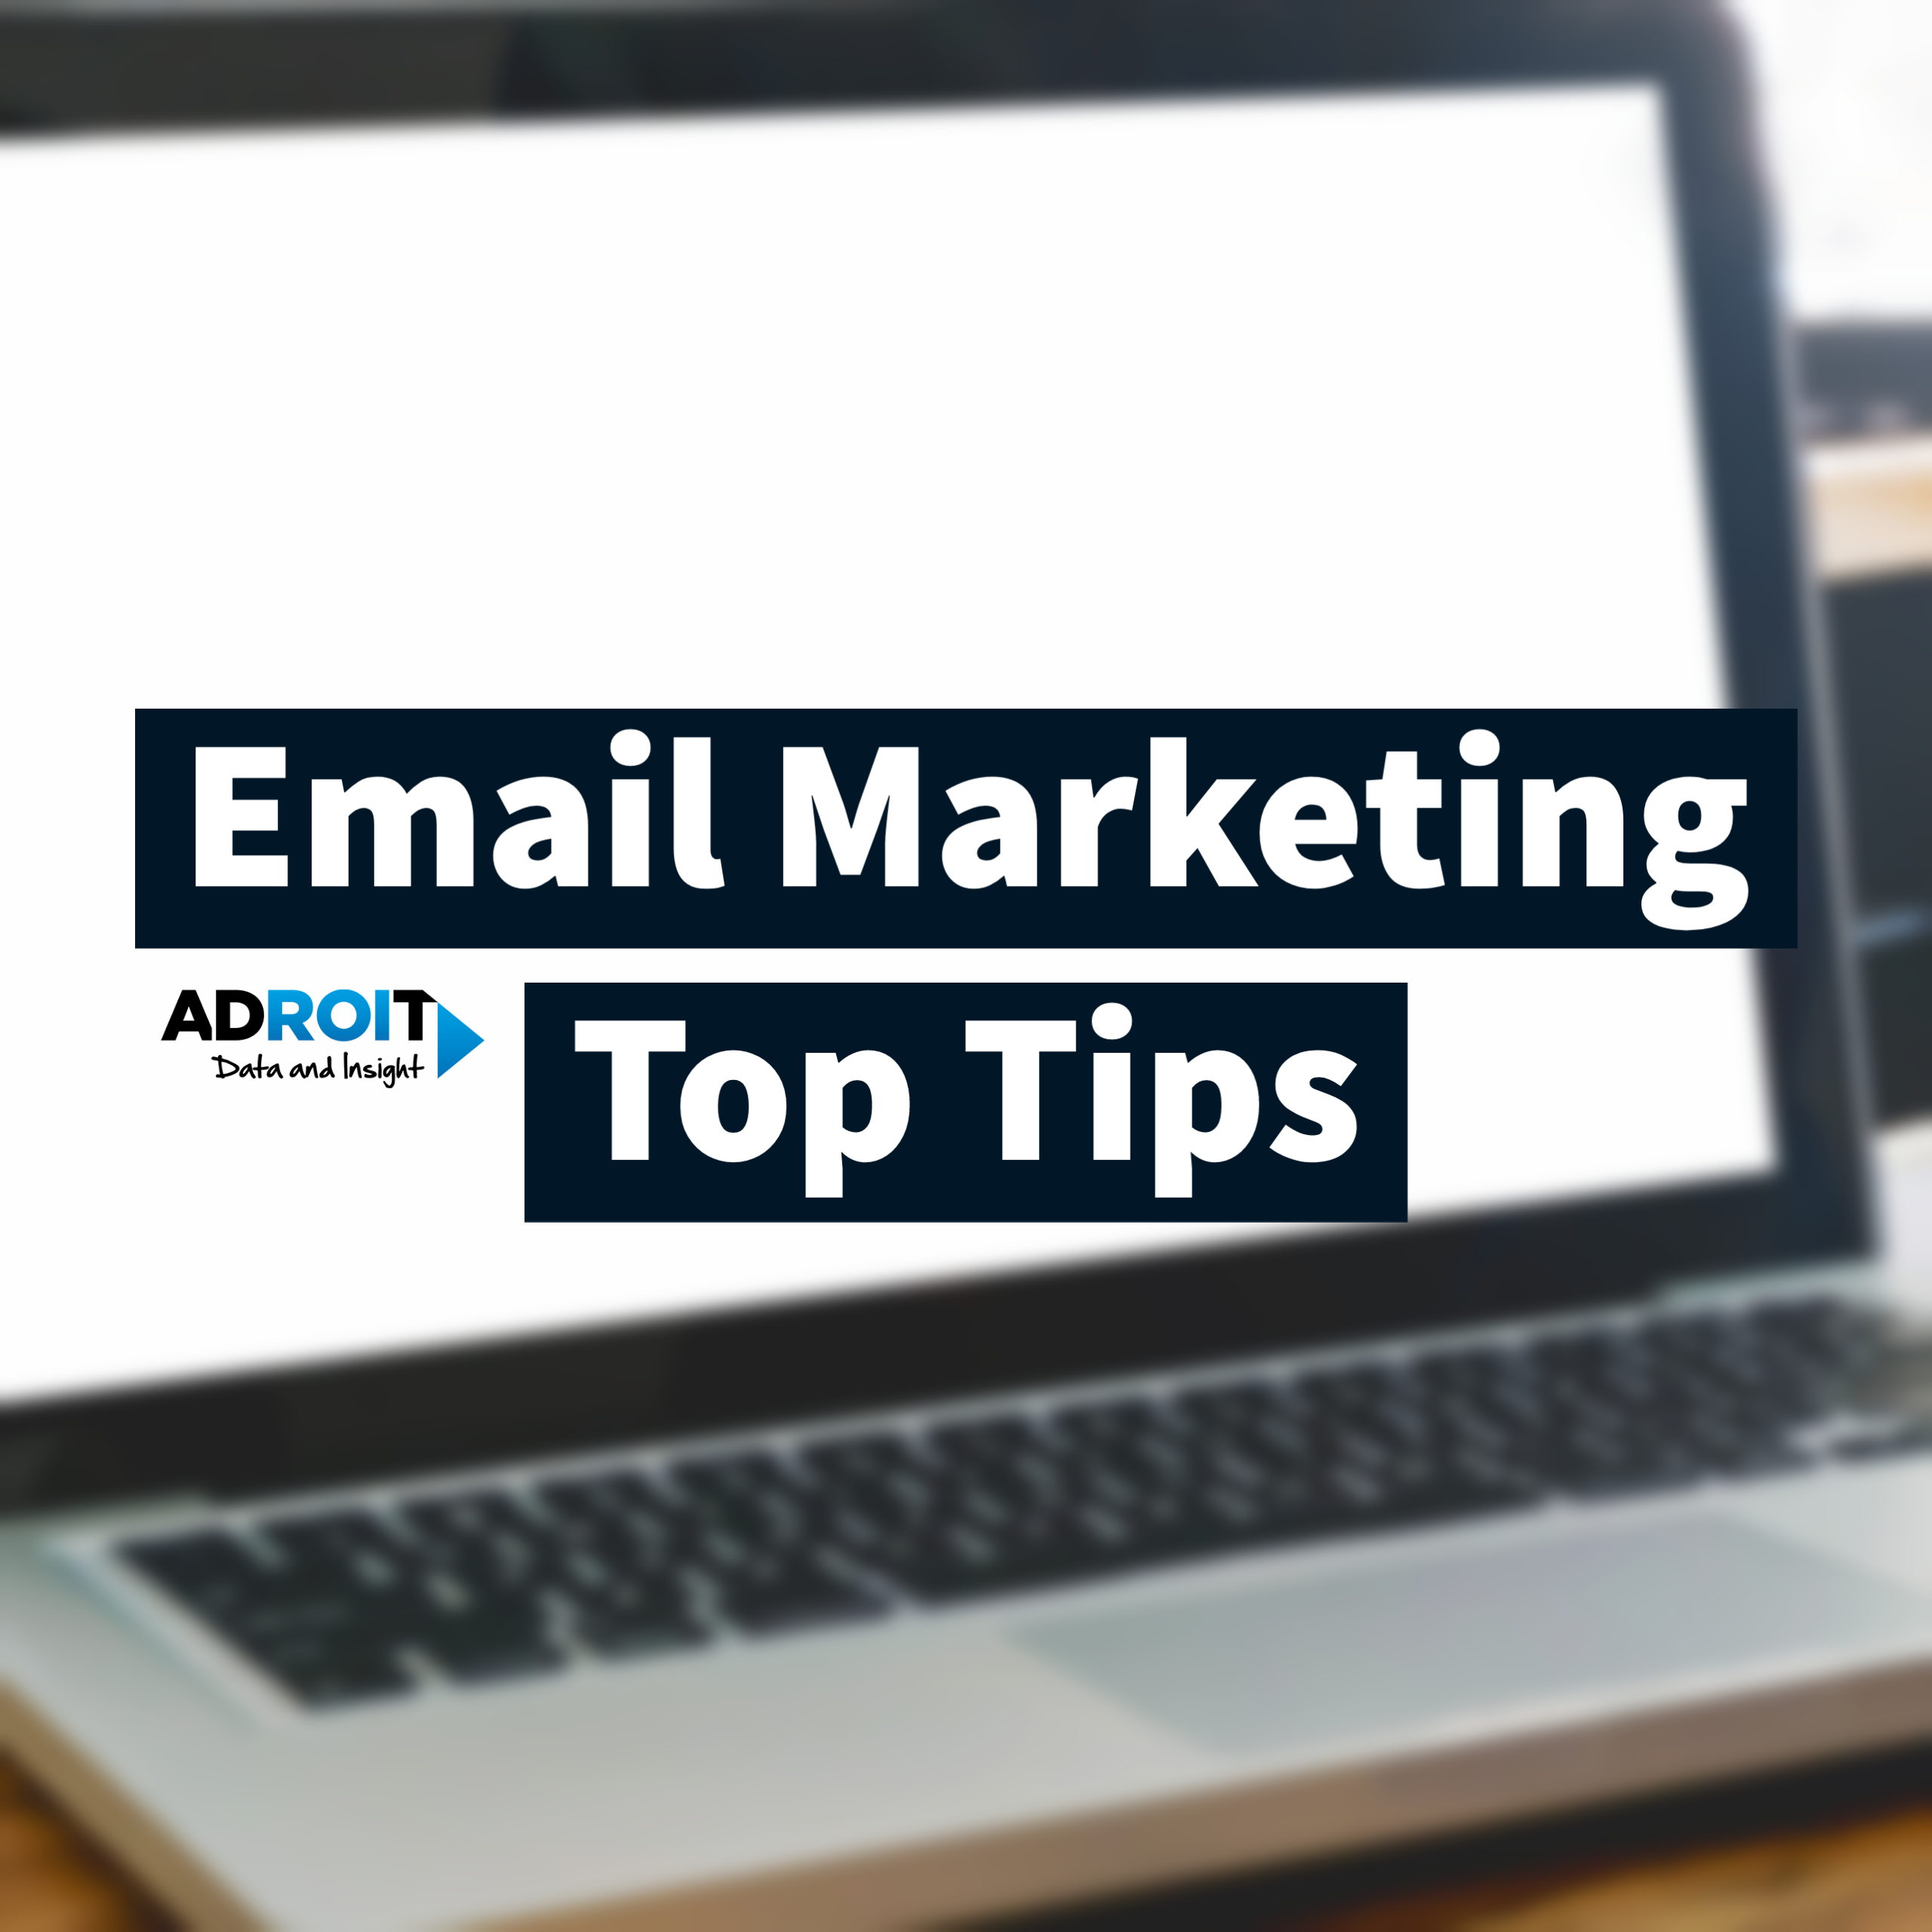 Laptop blurred background with 'Email Marketing top tips' text overlaid.